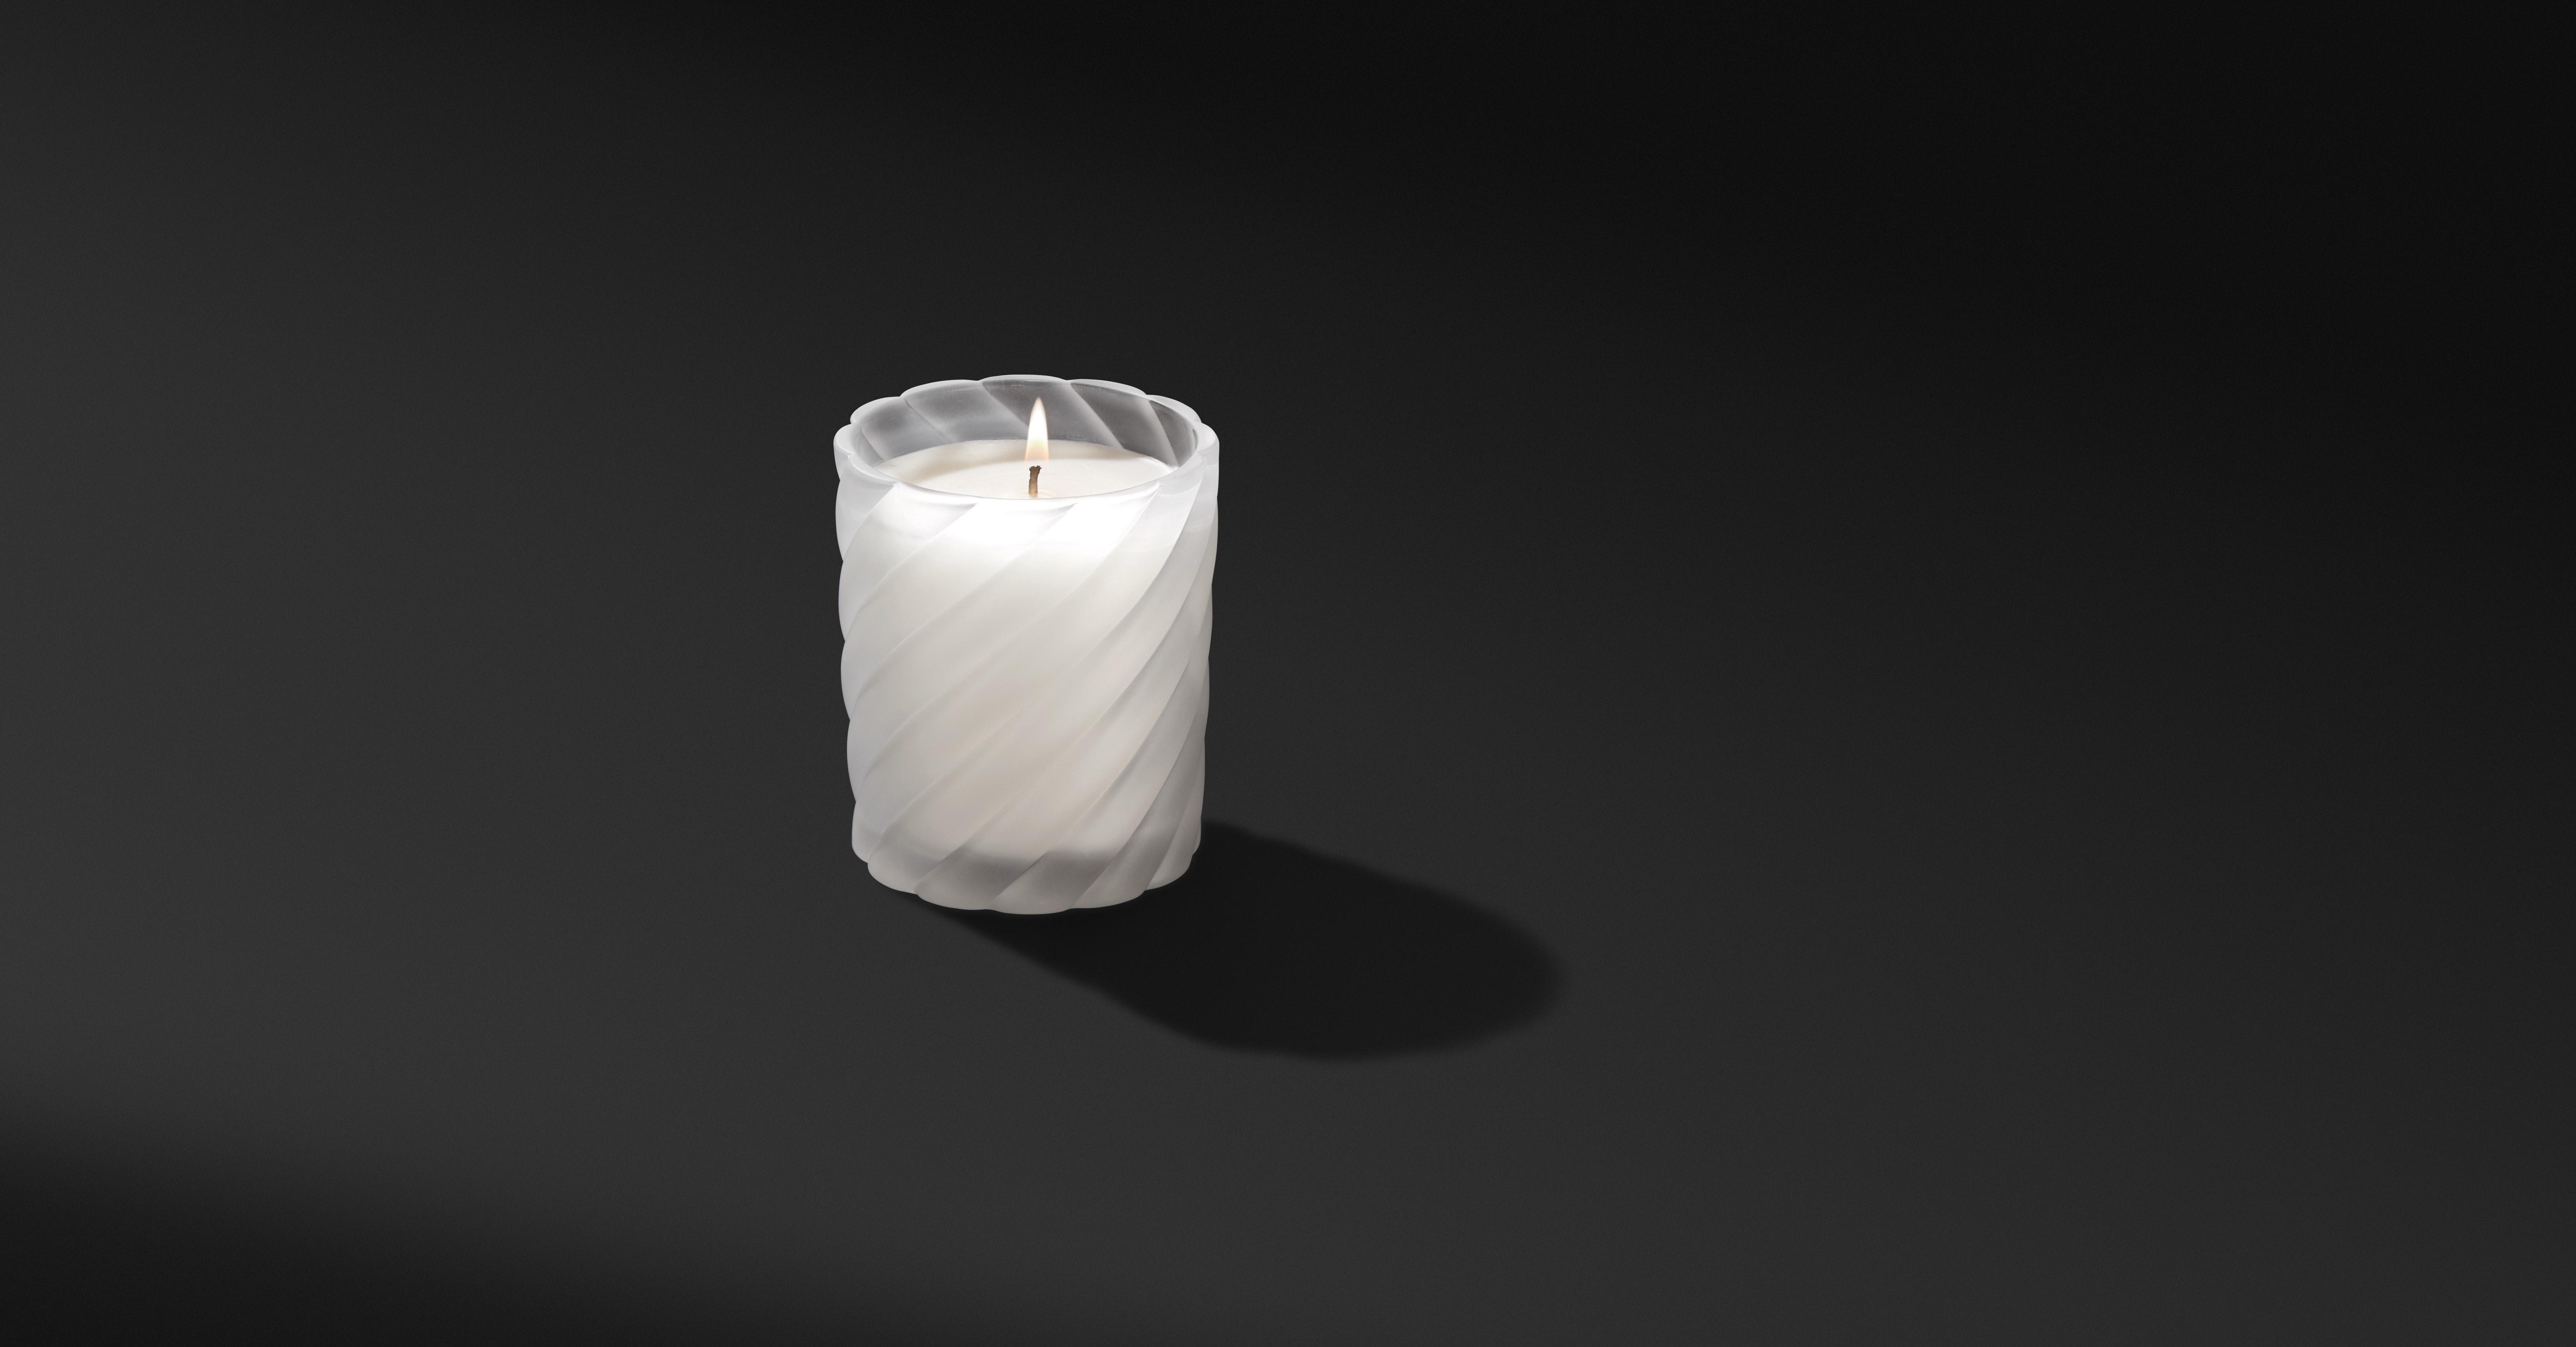 David Yurman's New Holiday Candles Are Here — & Yes, They're As Pretty As The Jewelry